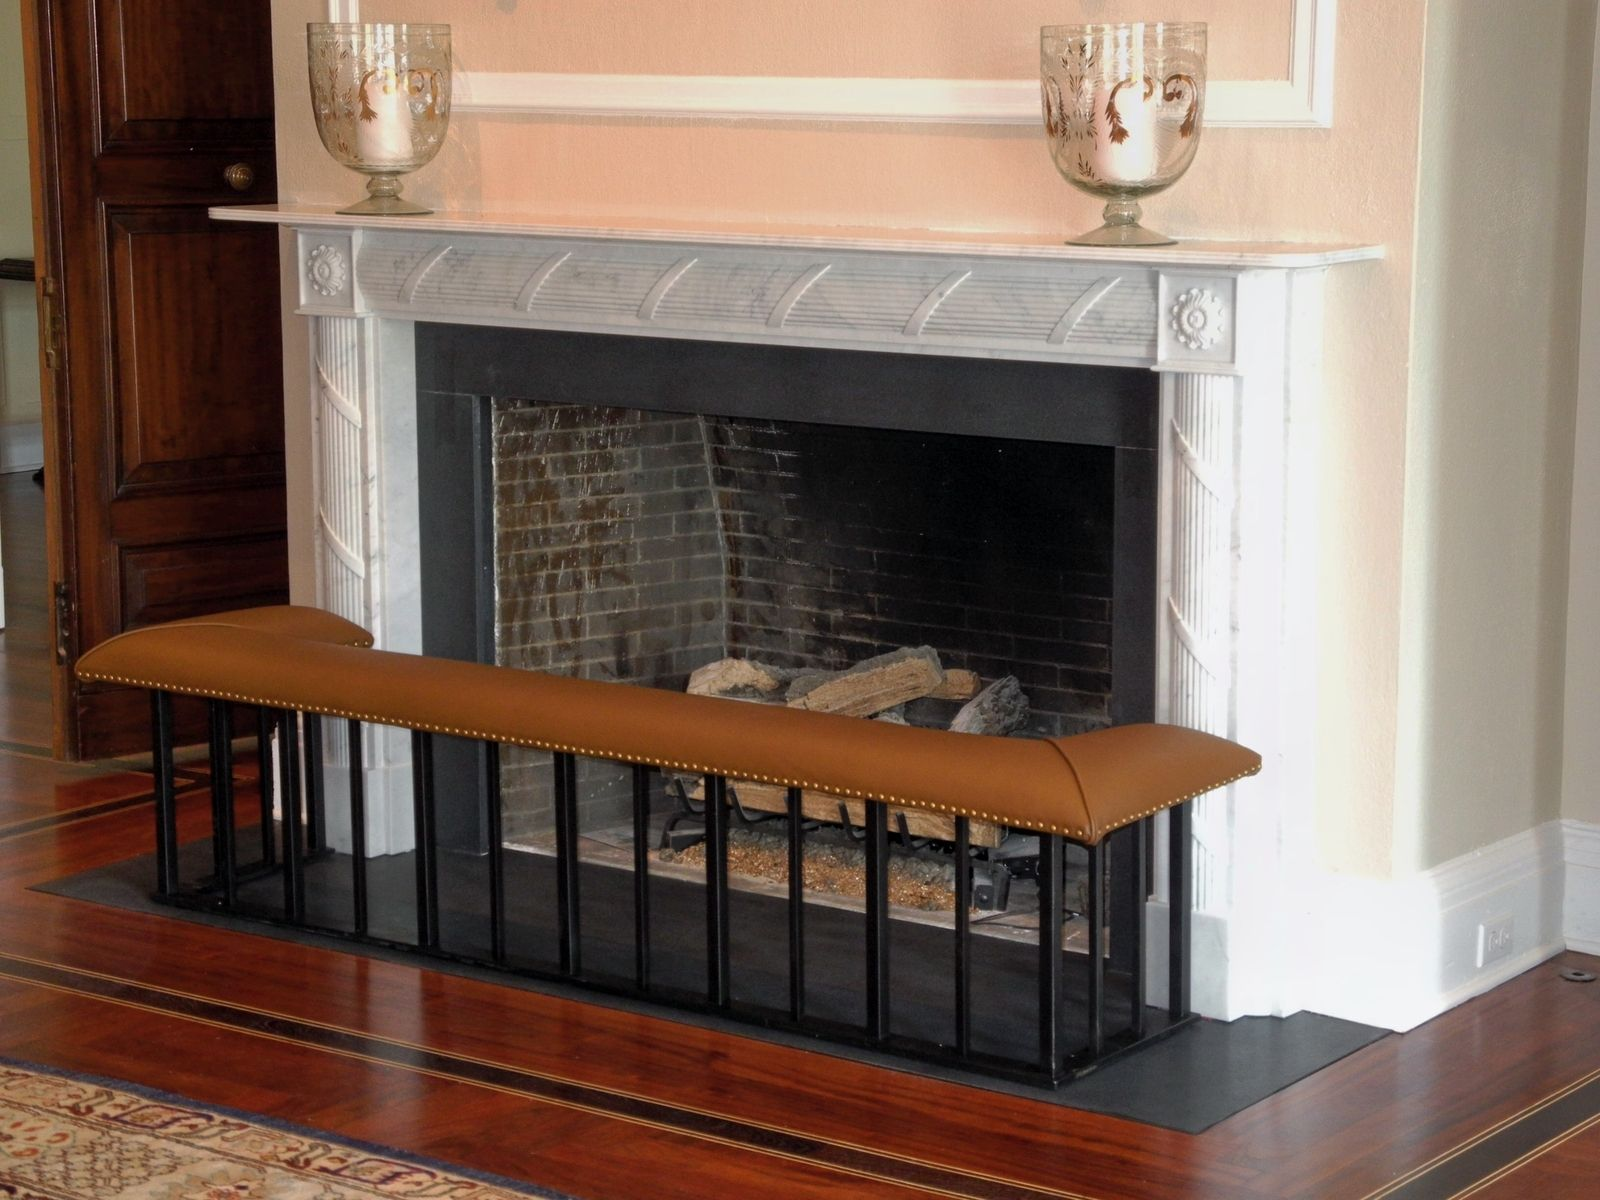 Handmade Club Fender Fireplace Bench - The 'Full' Model by Old ...